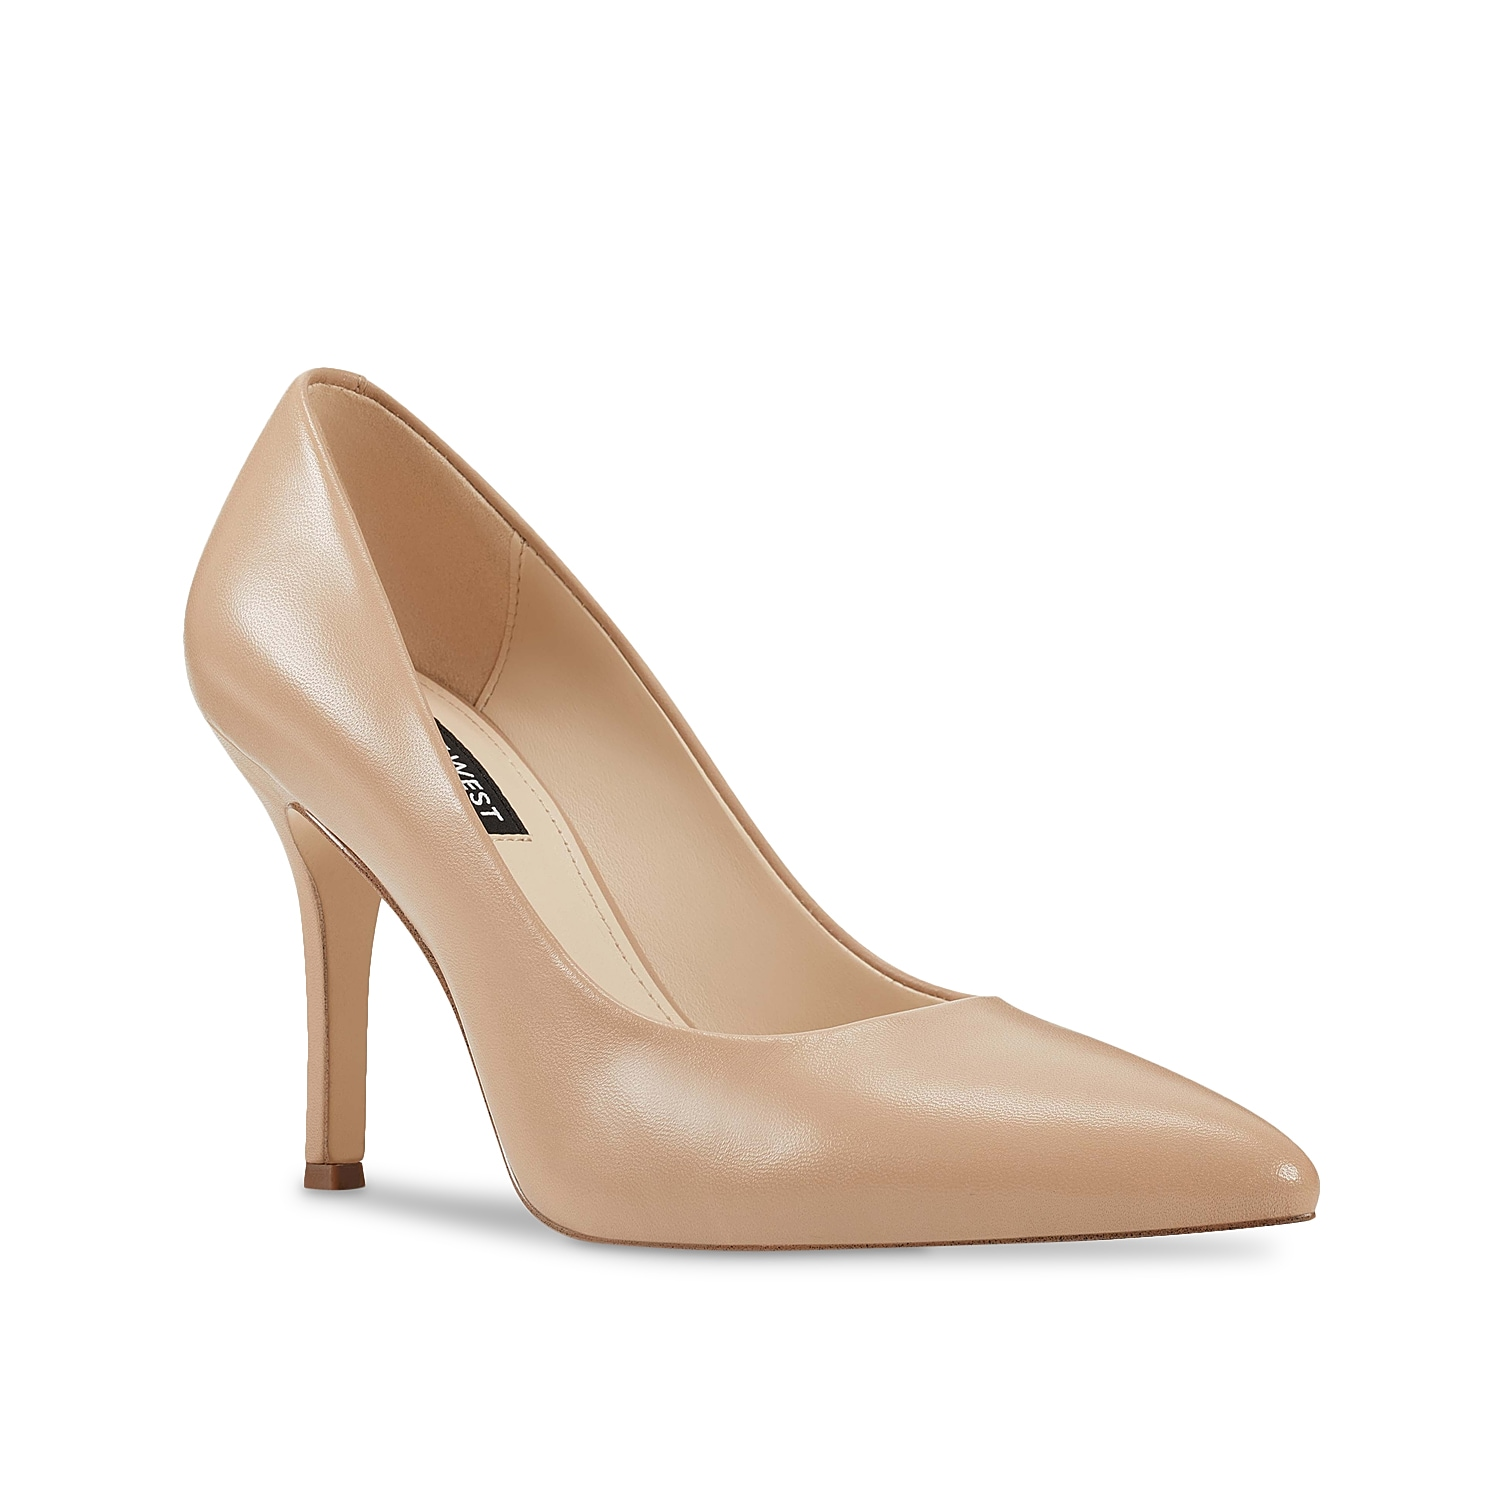 Dress up your ensemble in chic fashion with the Flax pump from Nine West. This classic silhouette is fashioned with a leather upper and skinny heel for showstopping struts!